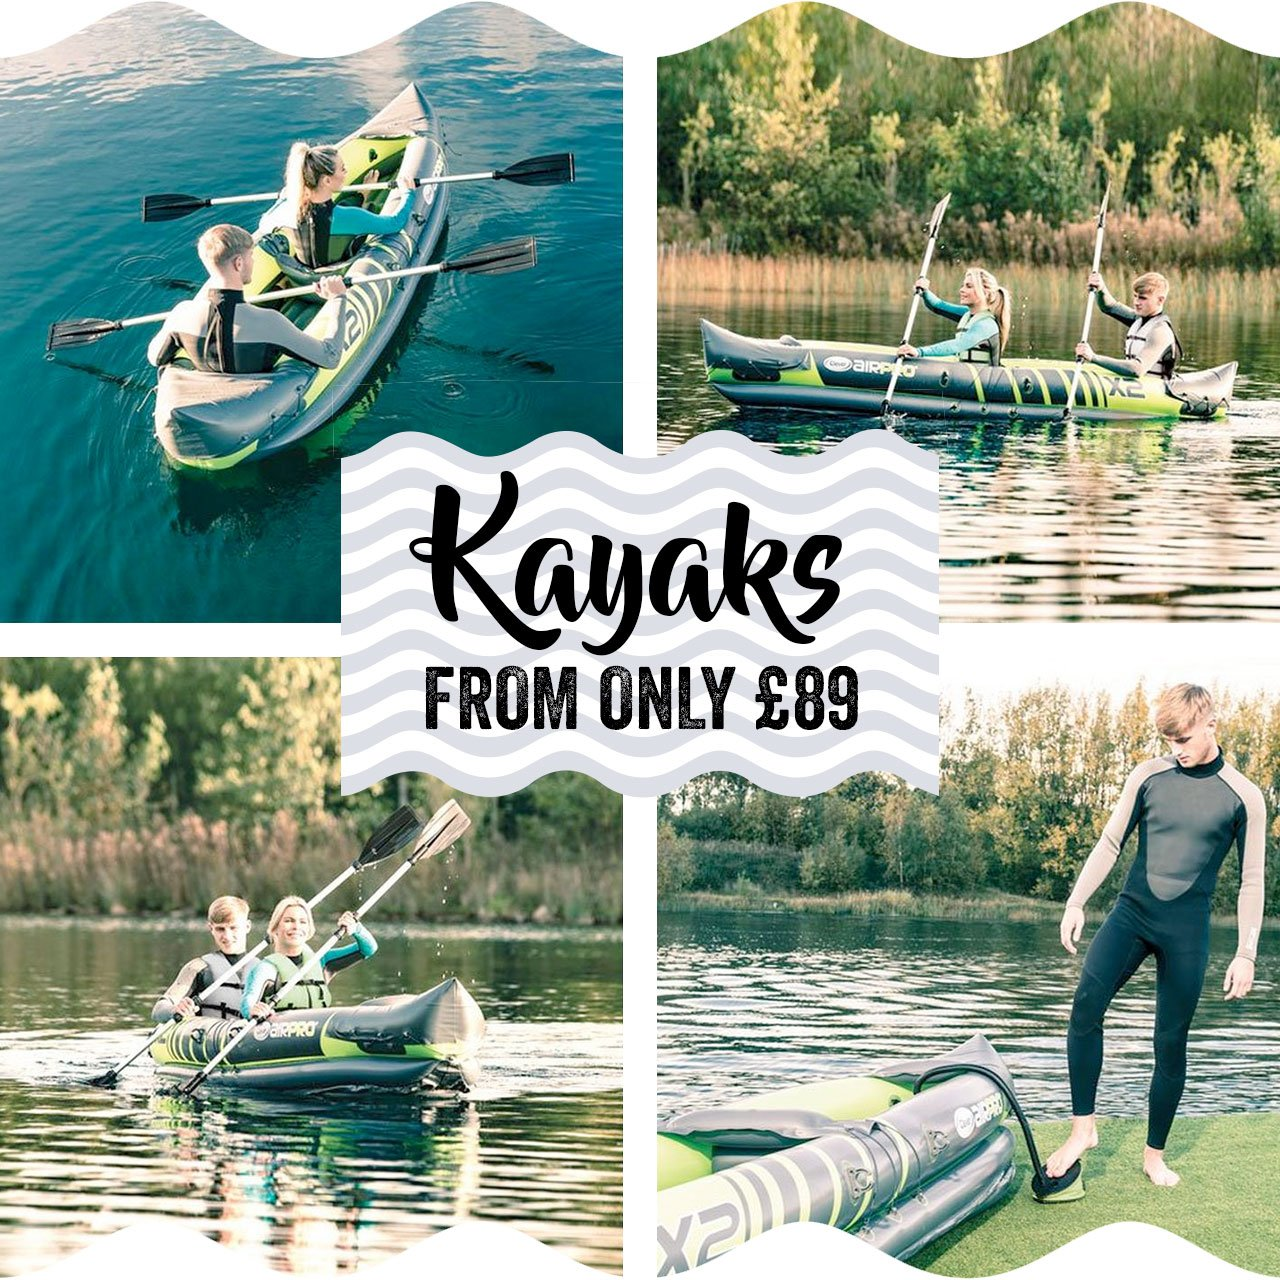 Kayaks from only £89